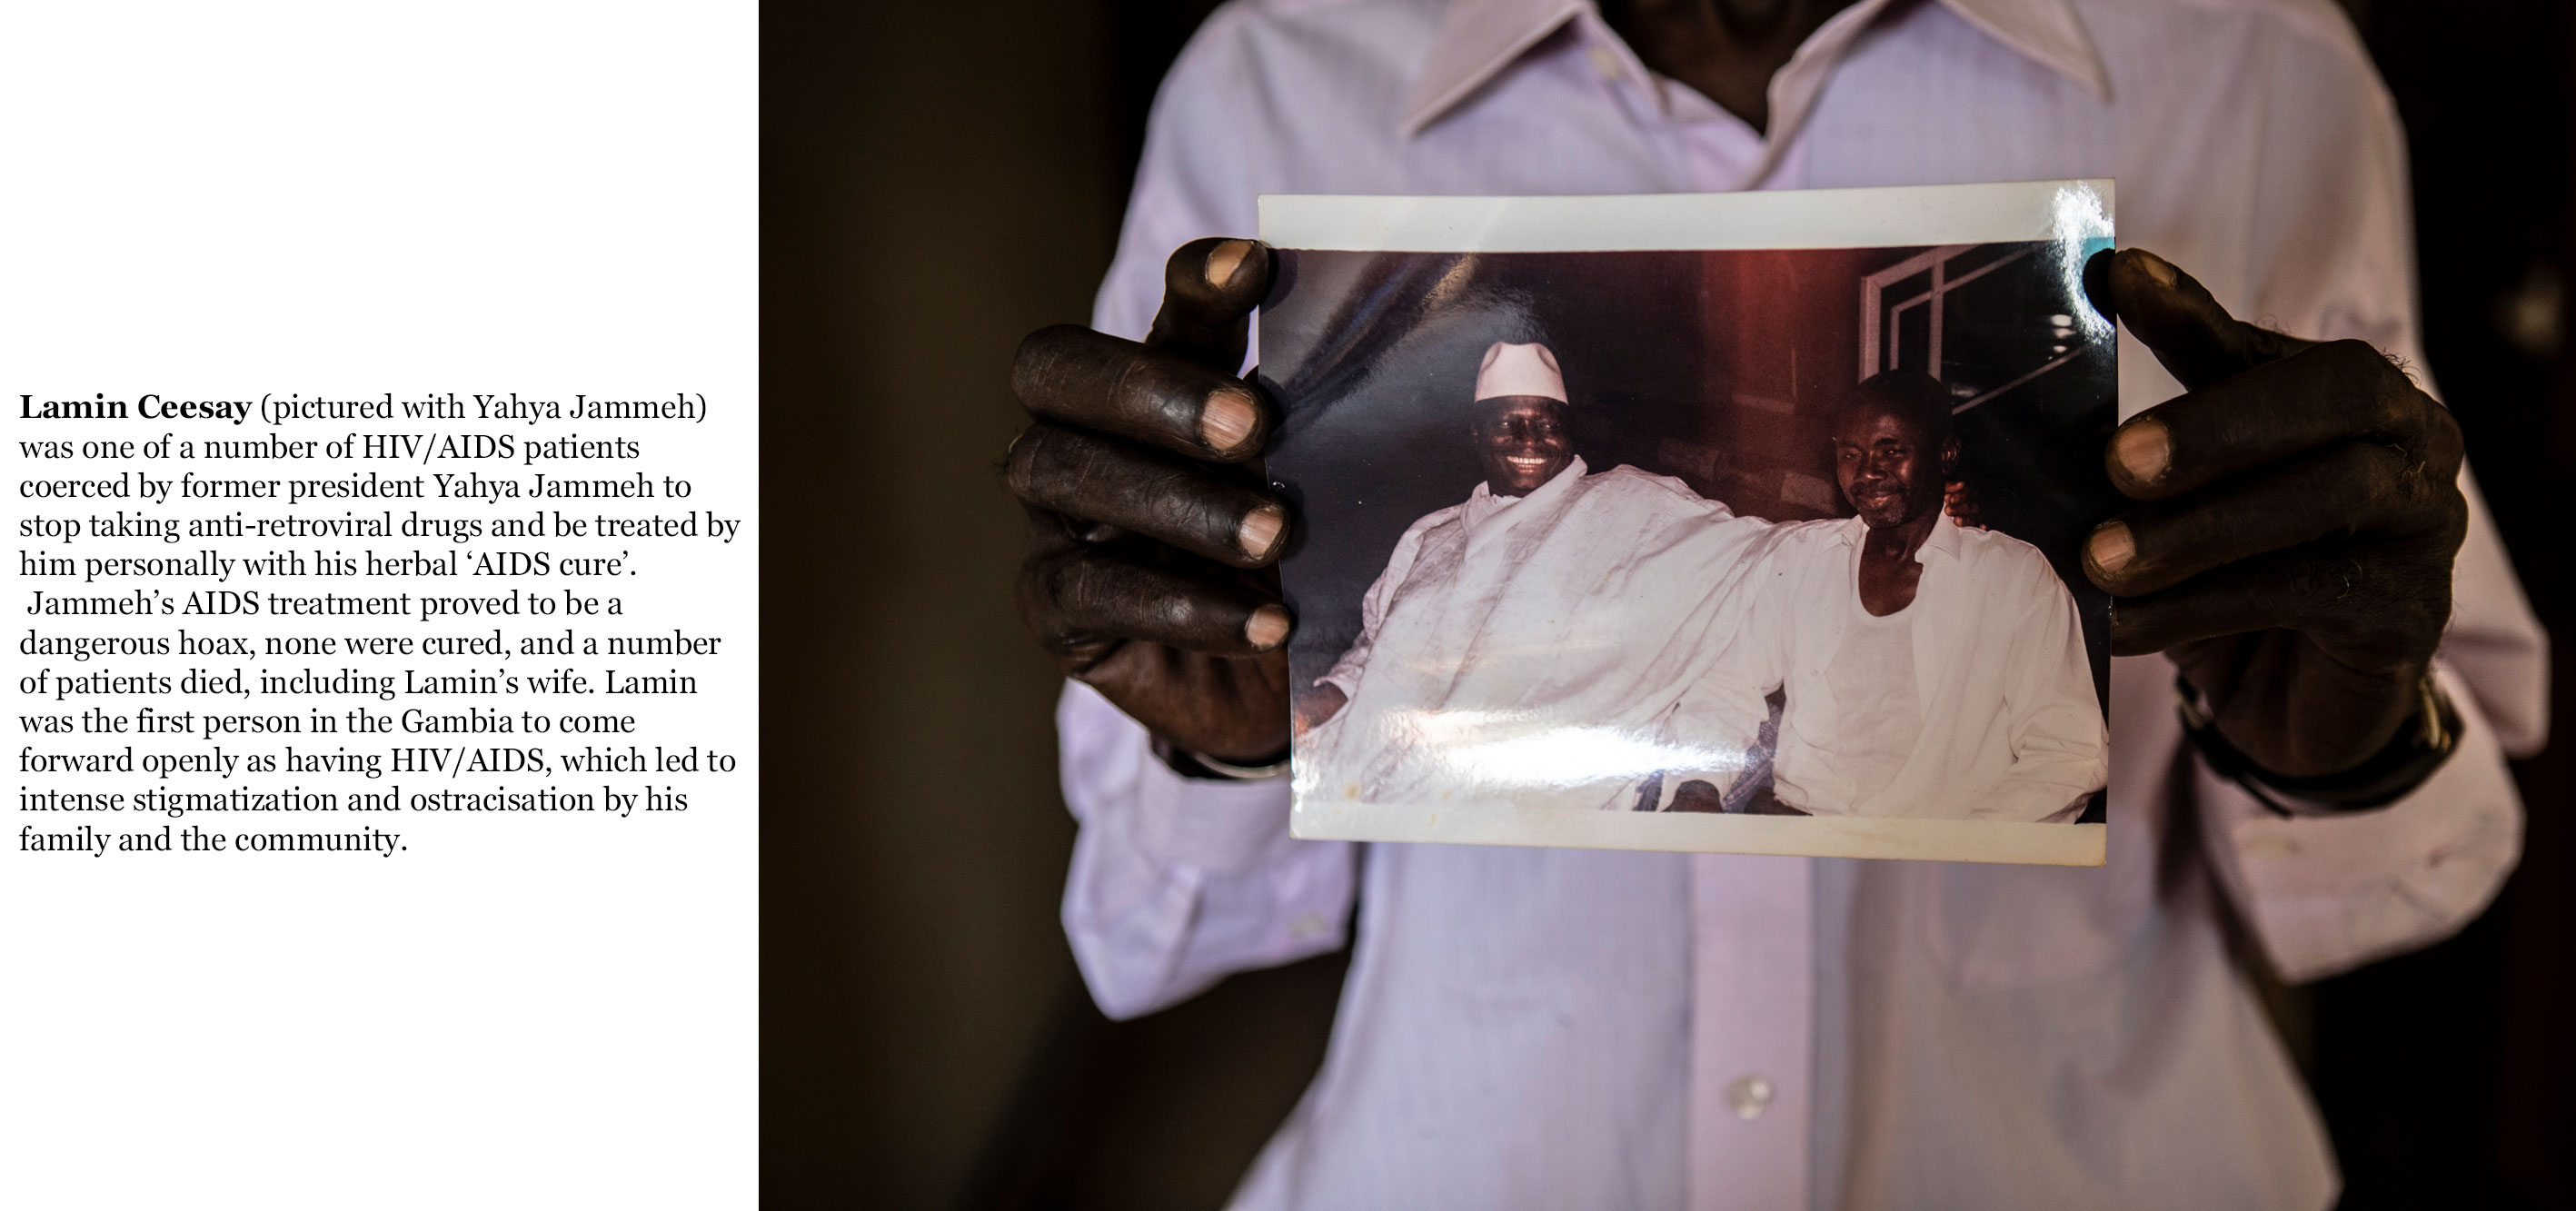 Gambia victims and resisters - Lamin-Moko-Ceesay-HIV/AIDS patient holds a photo of him with President Yahya Jammeh 1649_TEXT_web